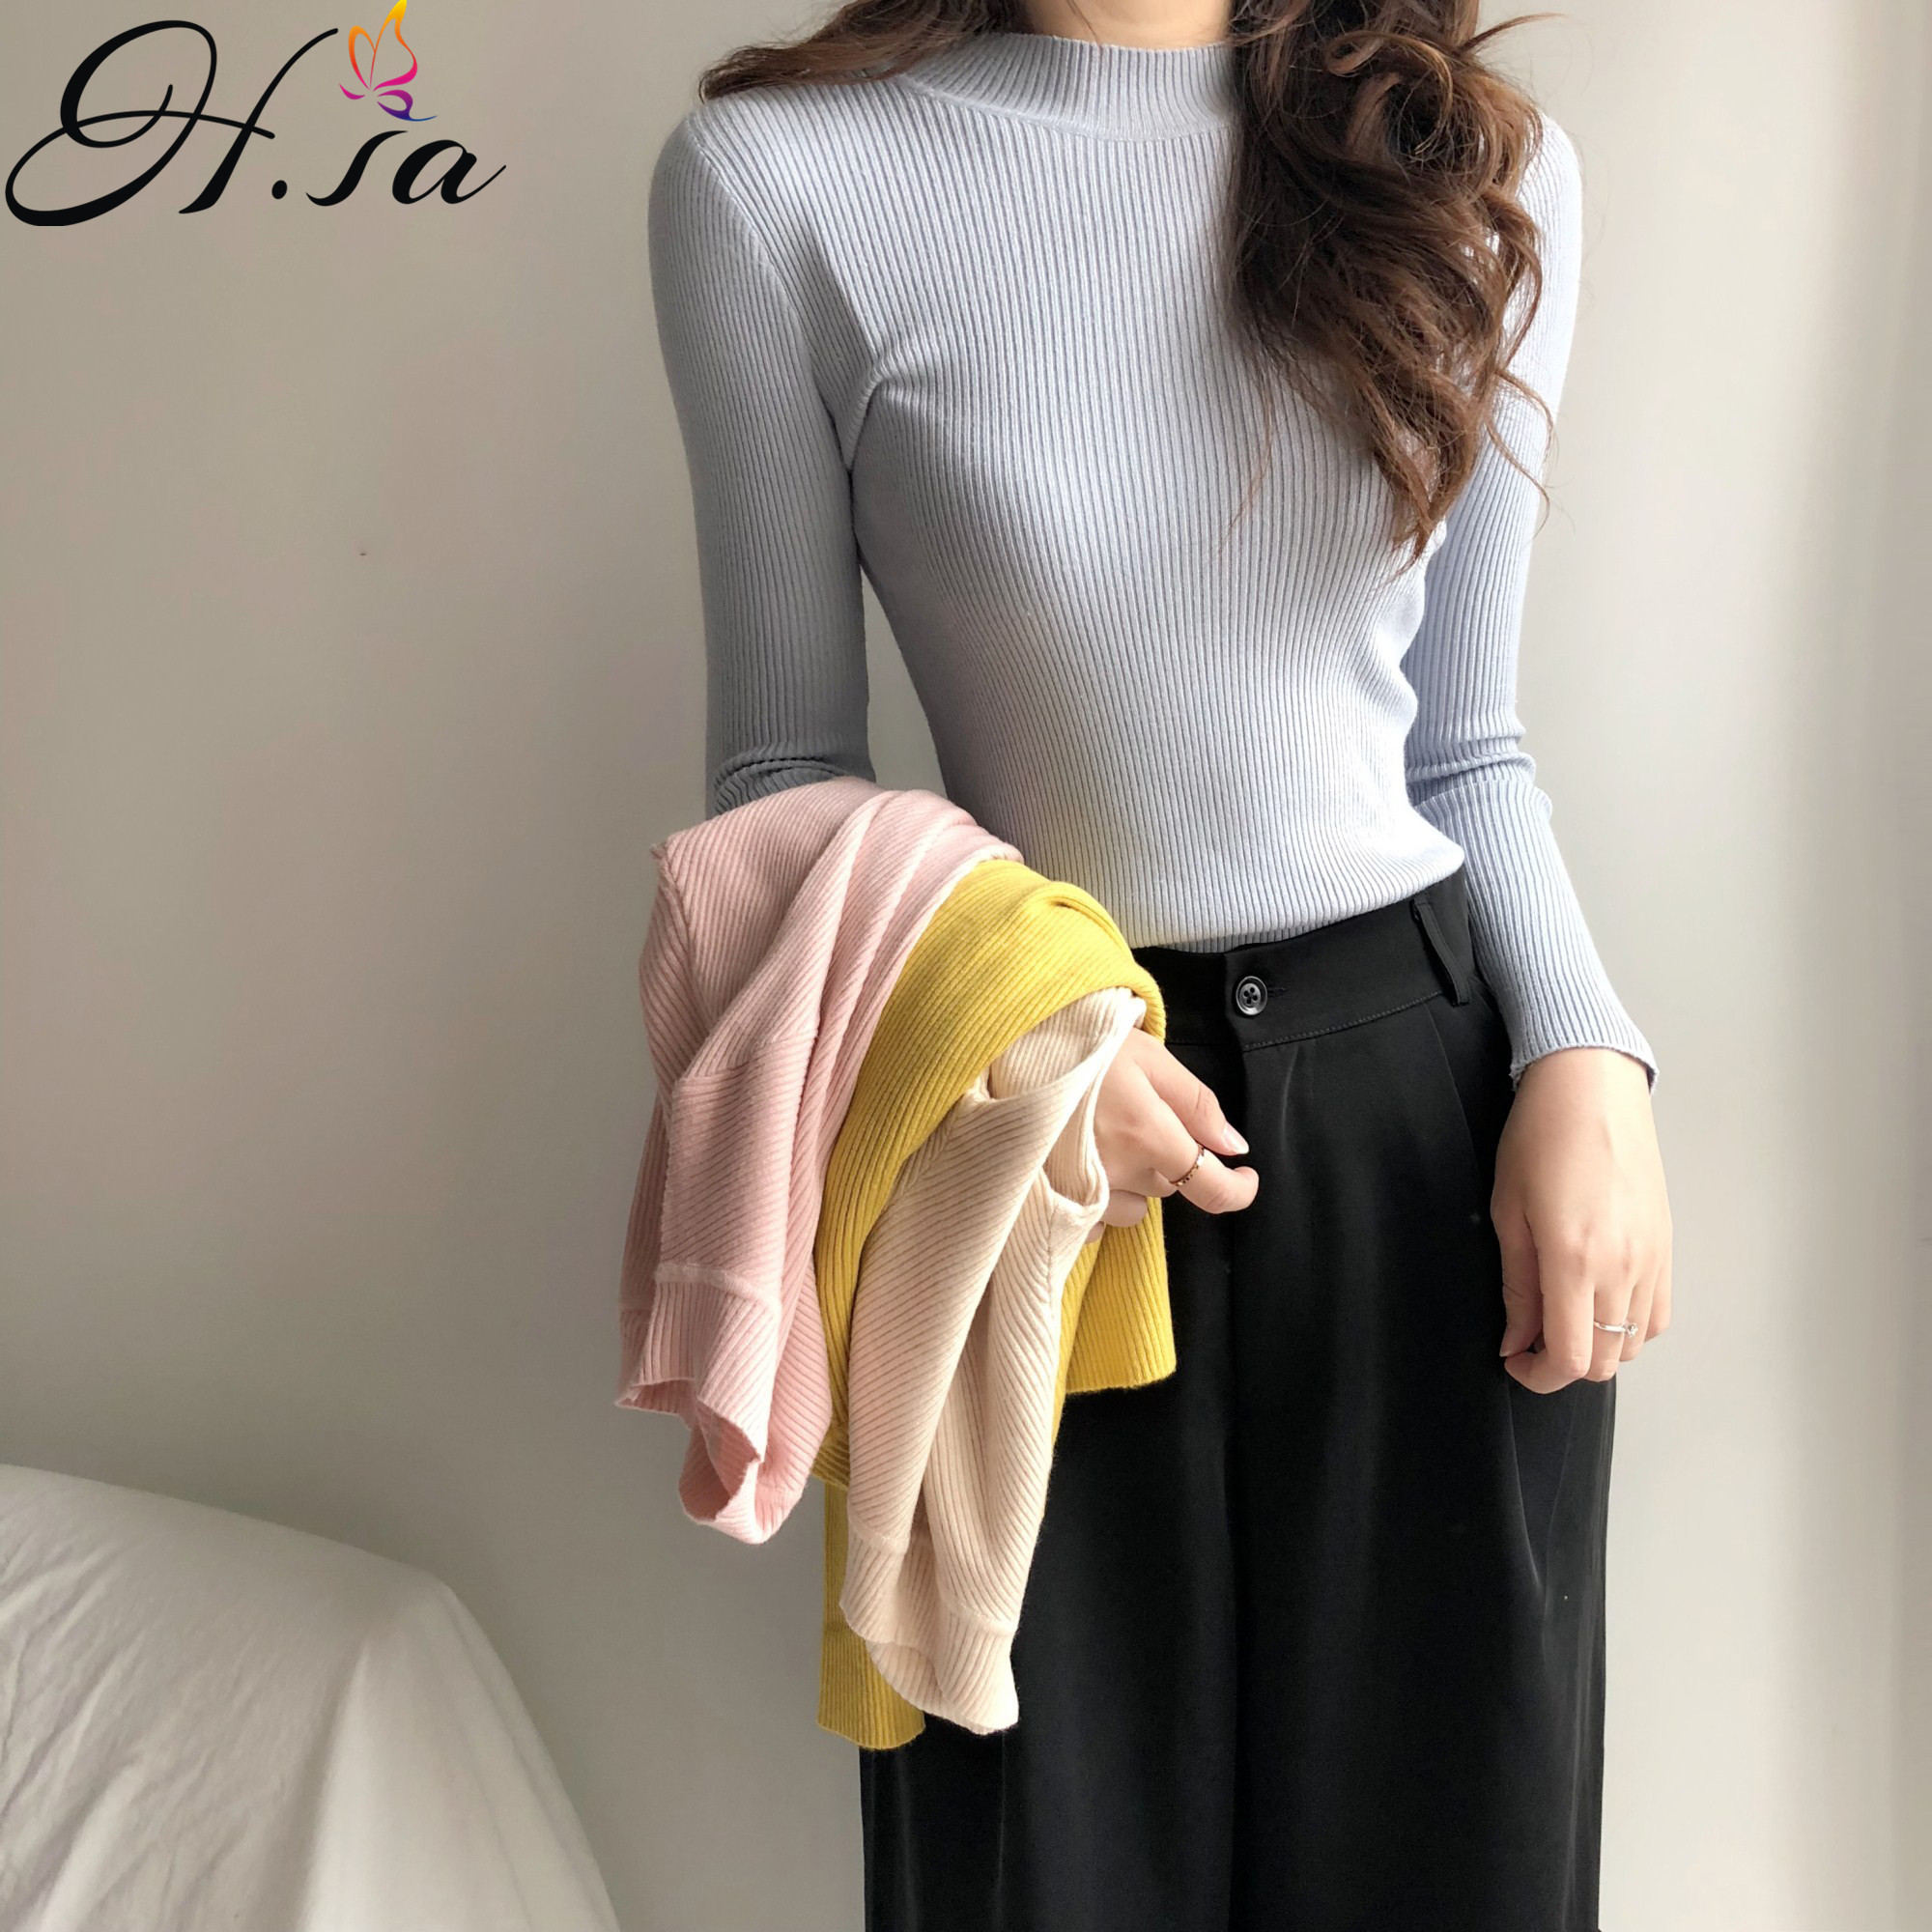 H.SA Autumn Winter Fall Fashion Women Turtleneck Pullover And Sweaters Slim Basic Winter Linner Sweaters Casual Pullovers Top